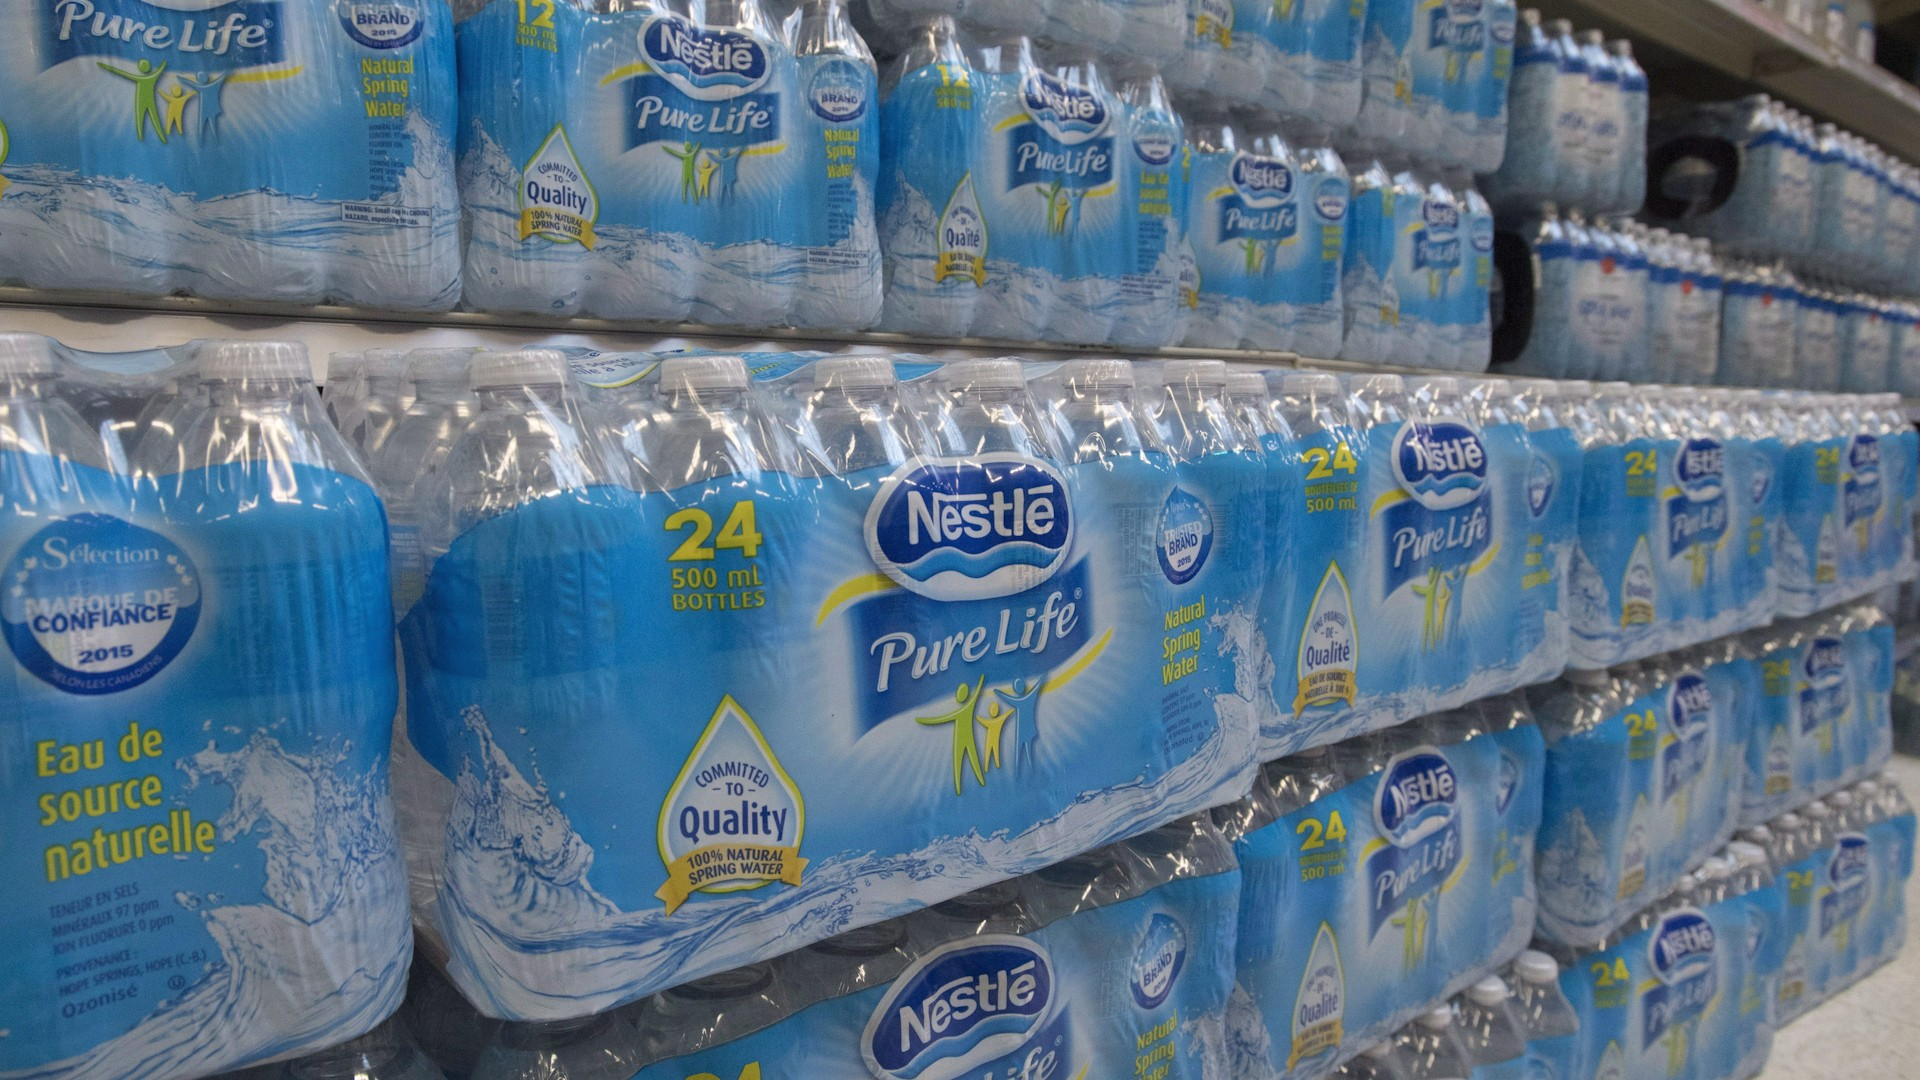 Ontario Wants Nestlé to Pay More for Groundwater But Is That Enough?